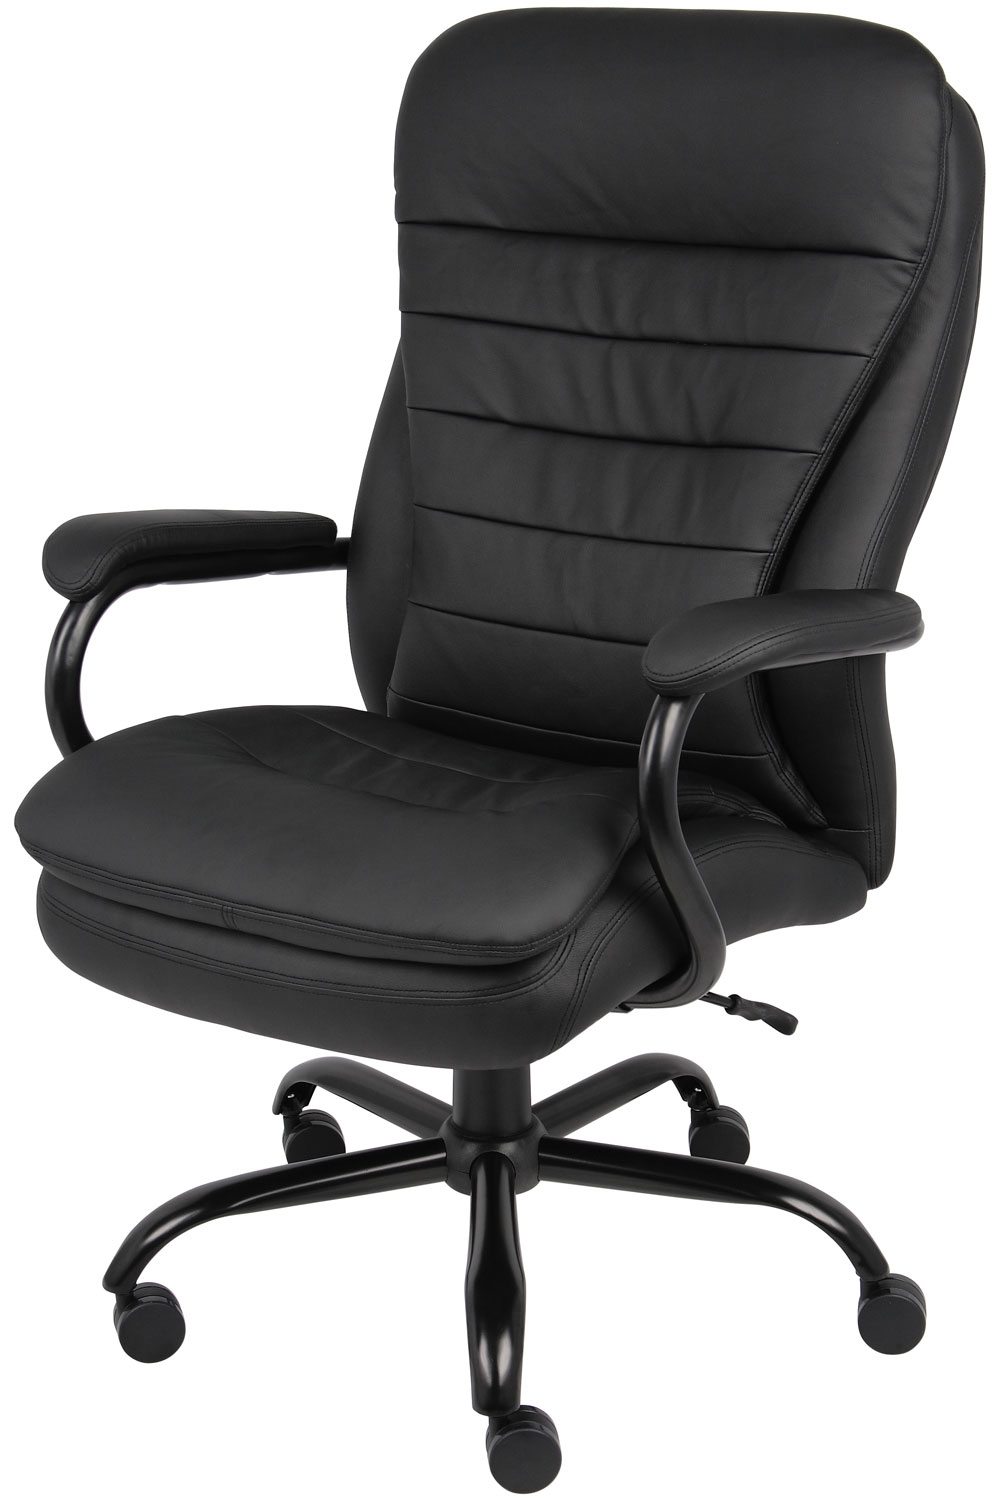 Tall Executive Office Chairs For Well Known B991 Cp Big And Tall Executive Office Chair In Caresoft Vinyl (View 15 of 20)